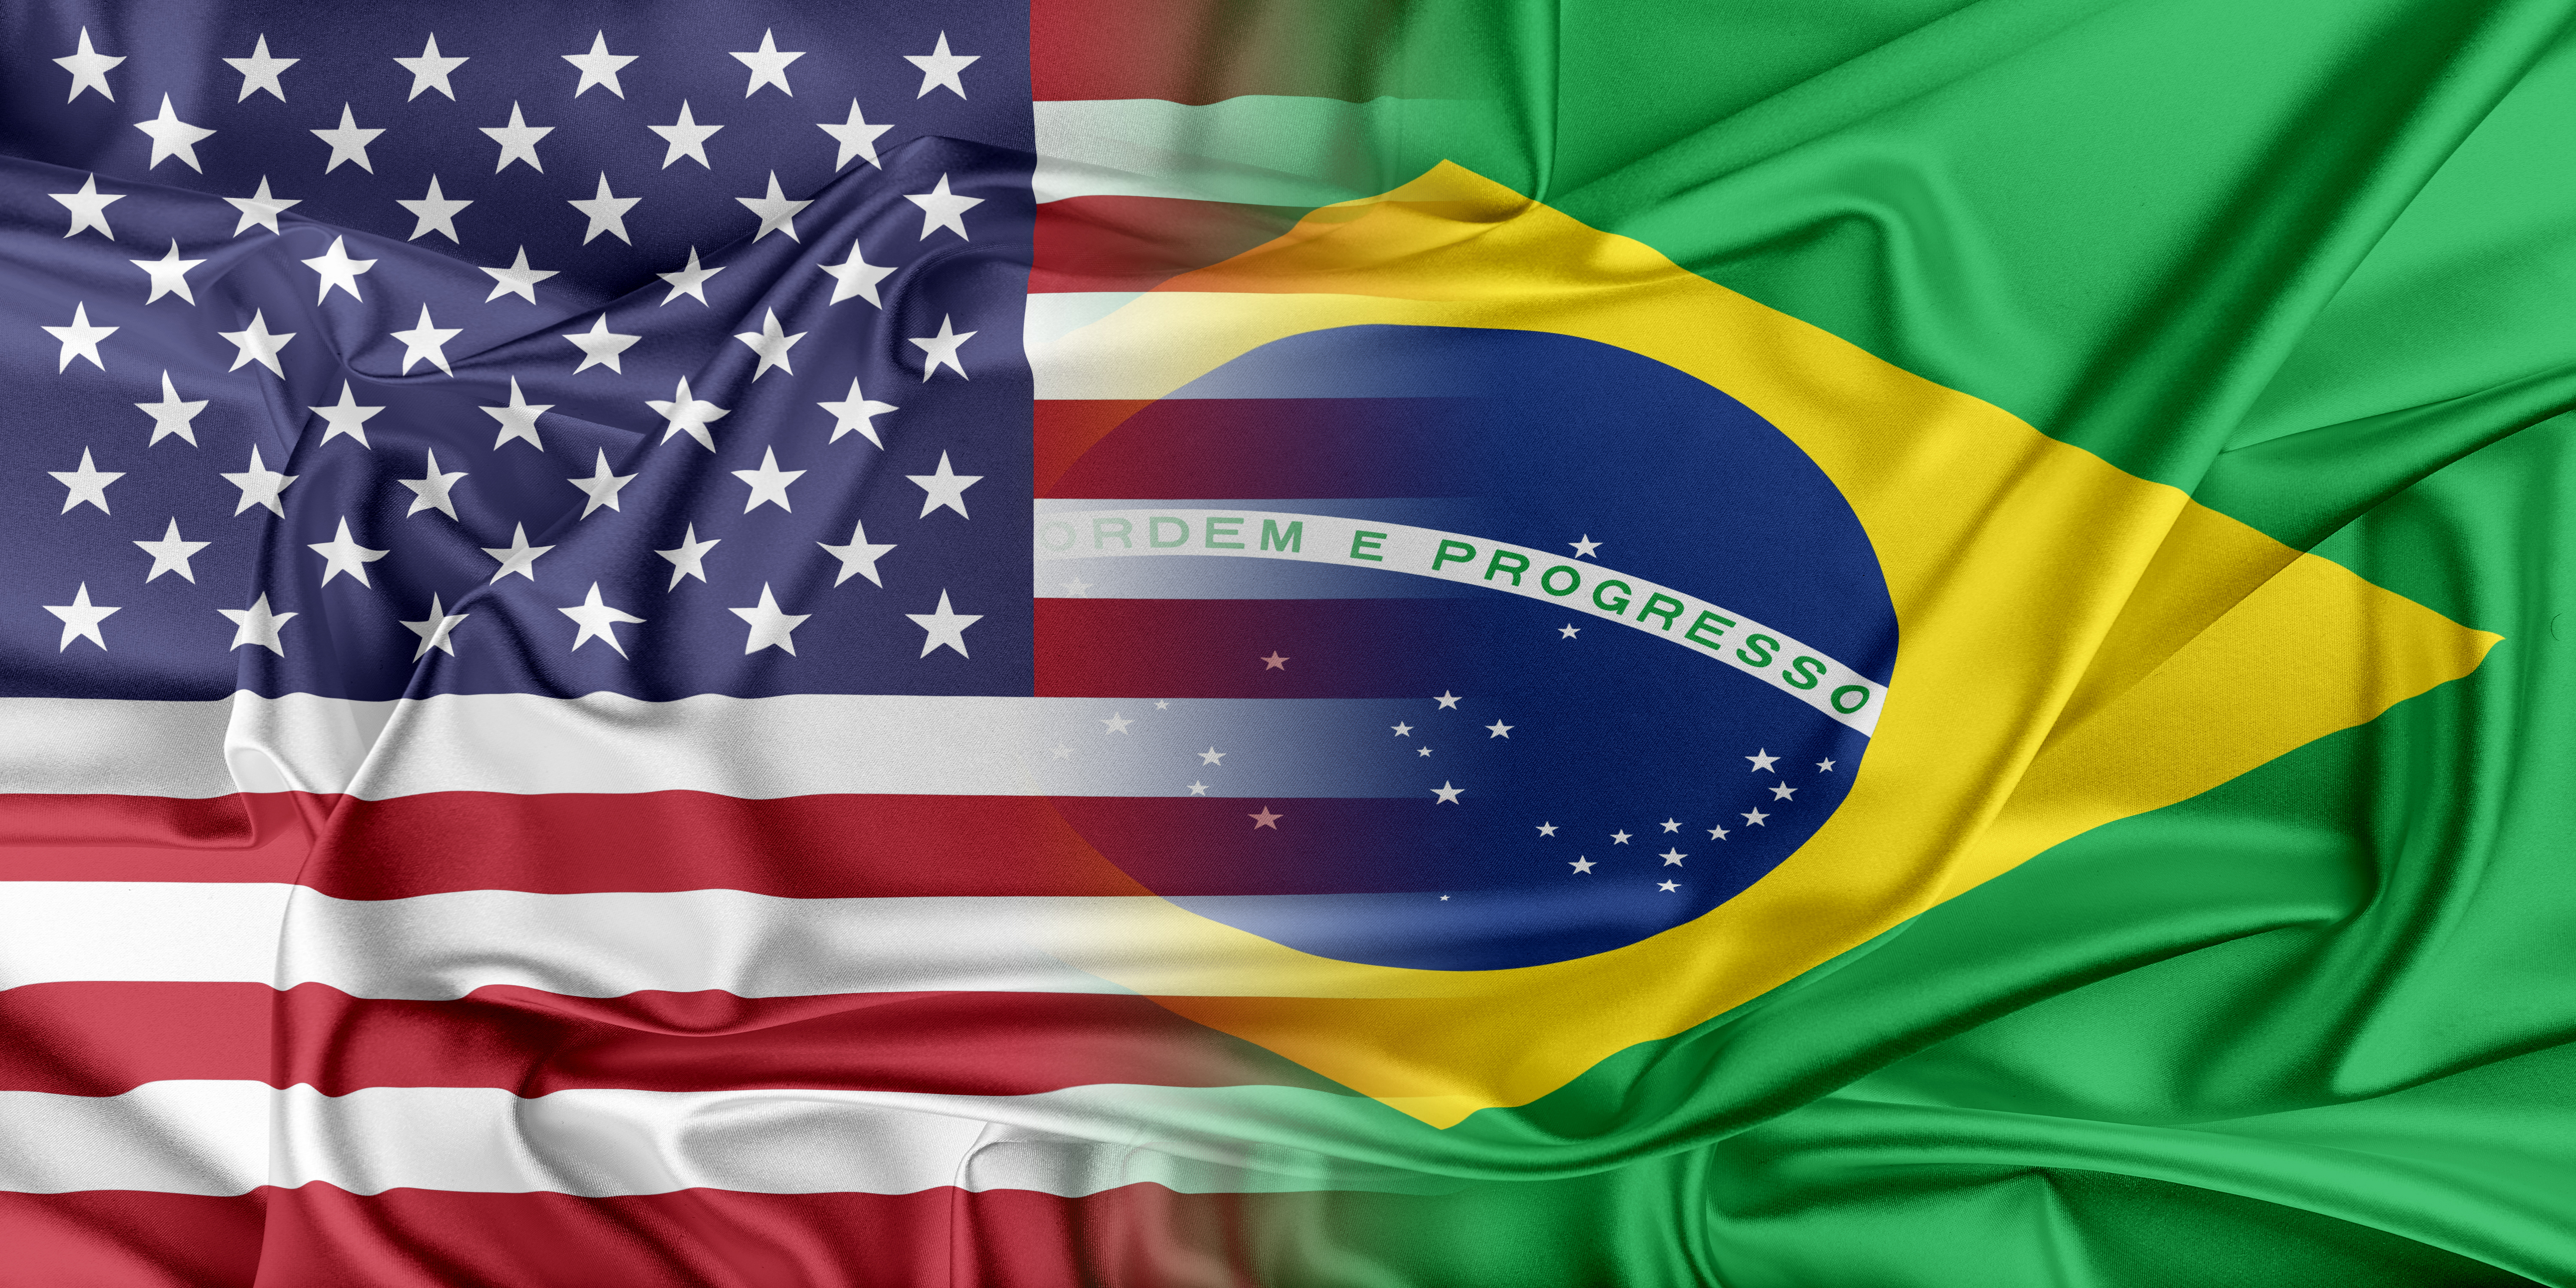 MIB and Abracomex partnership USA/BRAZIL